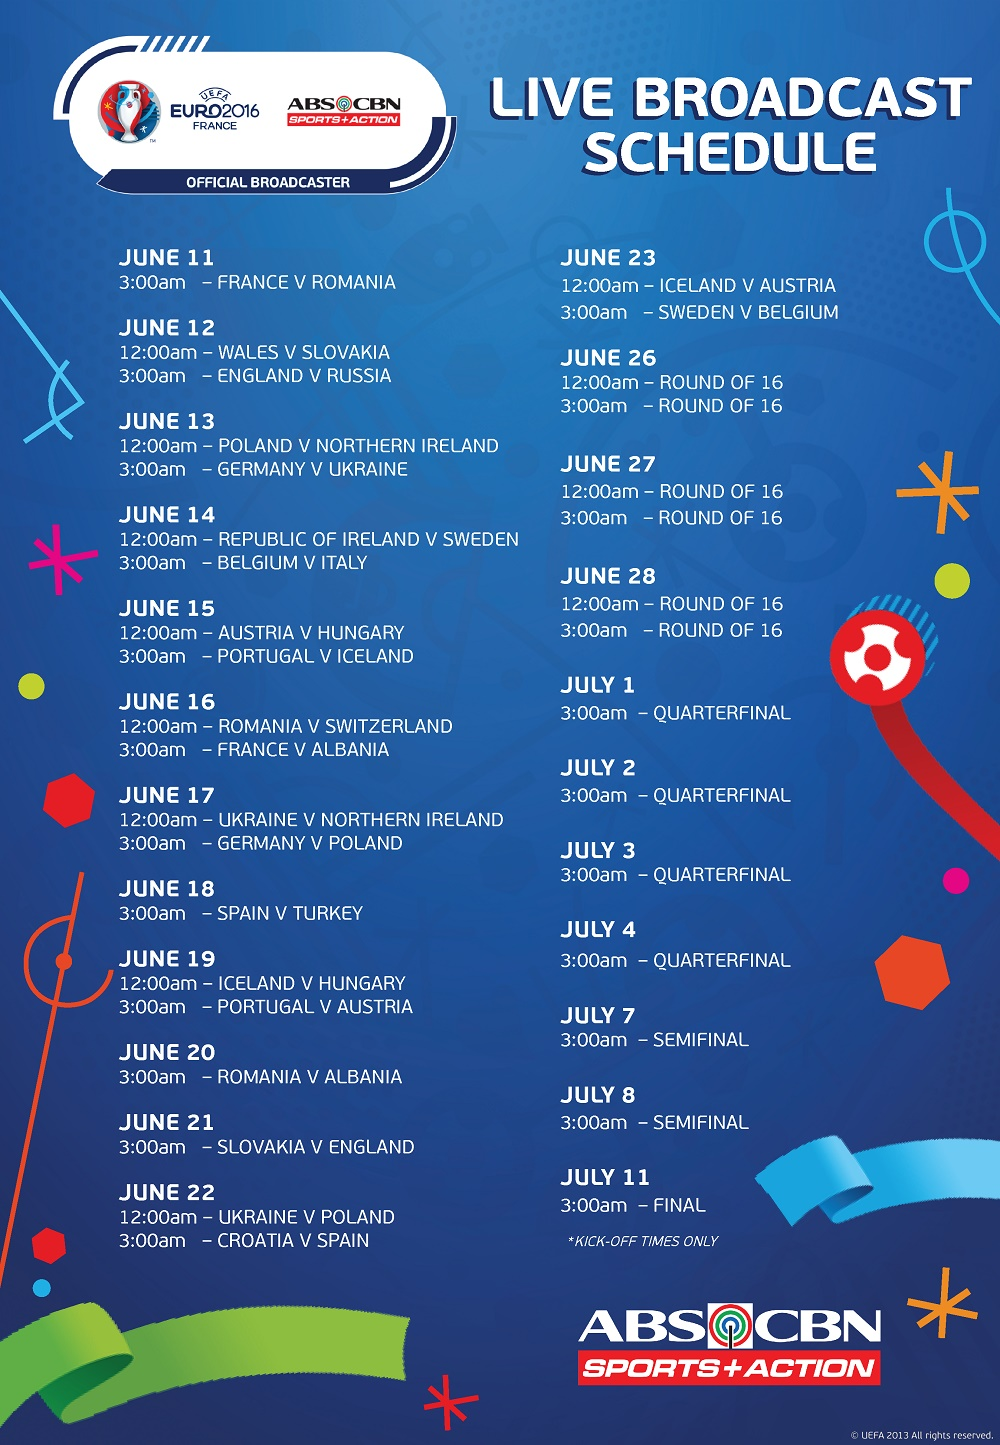 Look Uefa Euro 2016 Live Schedule On Abs Cbn S A Abs Cbn Sports